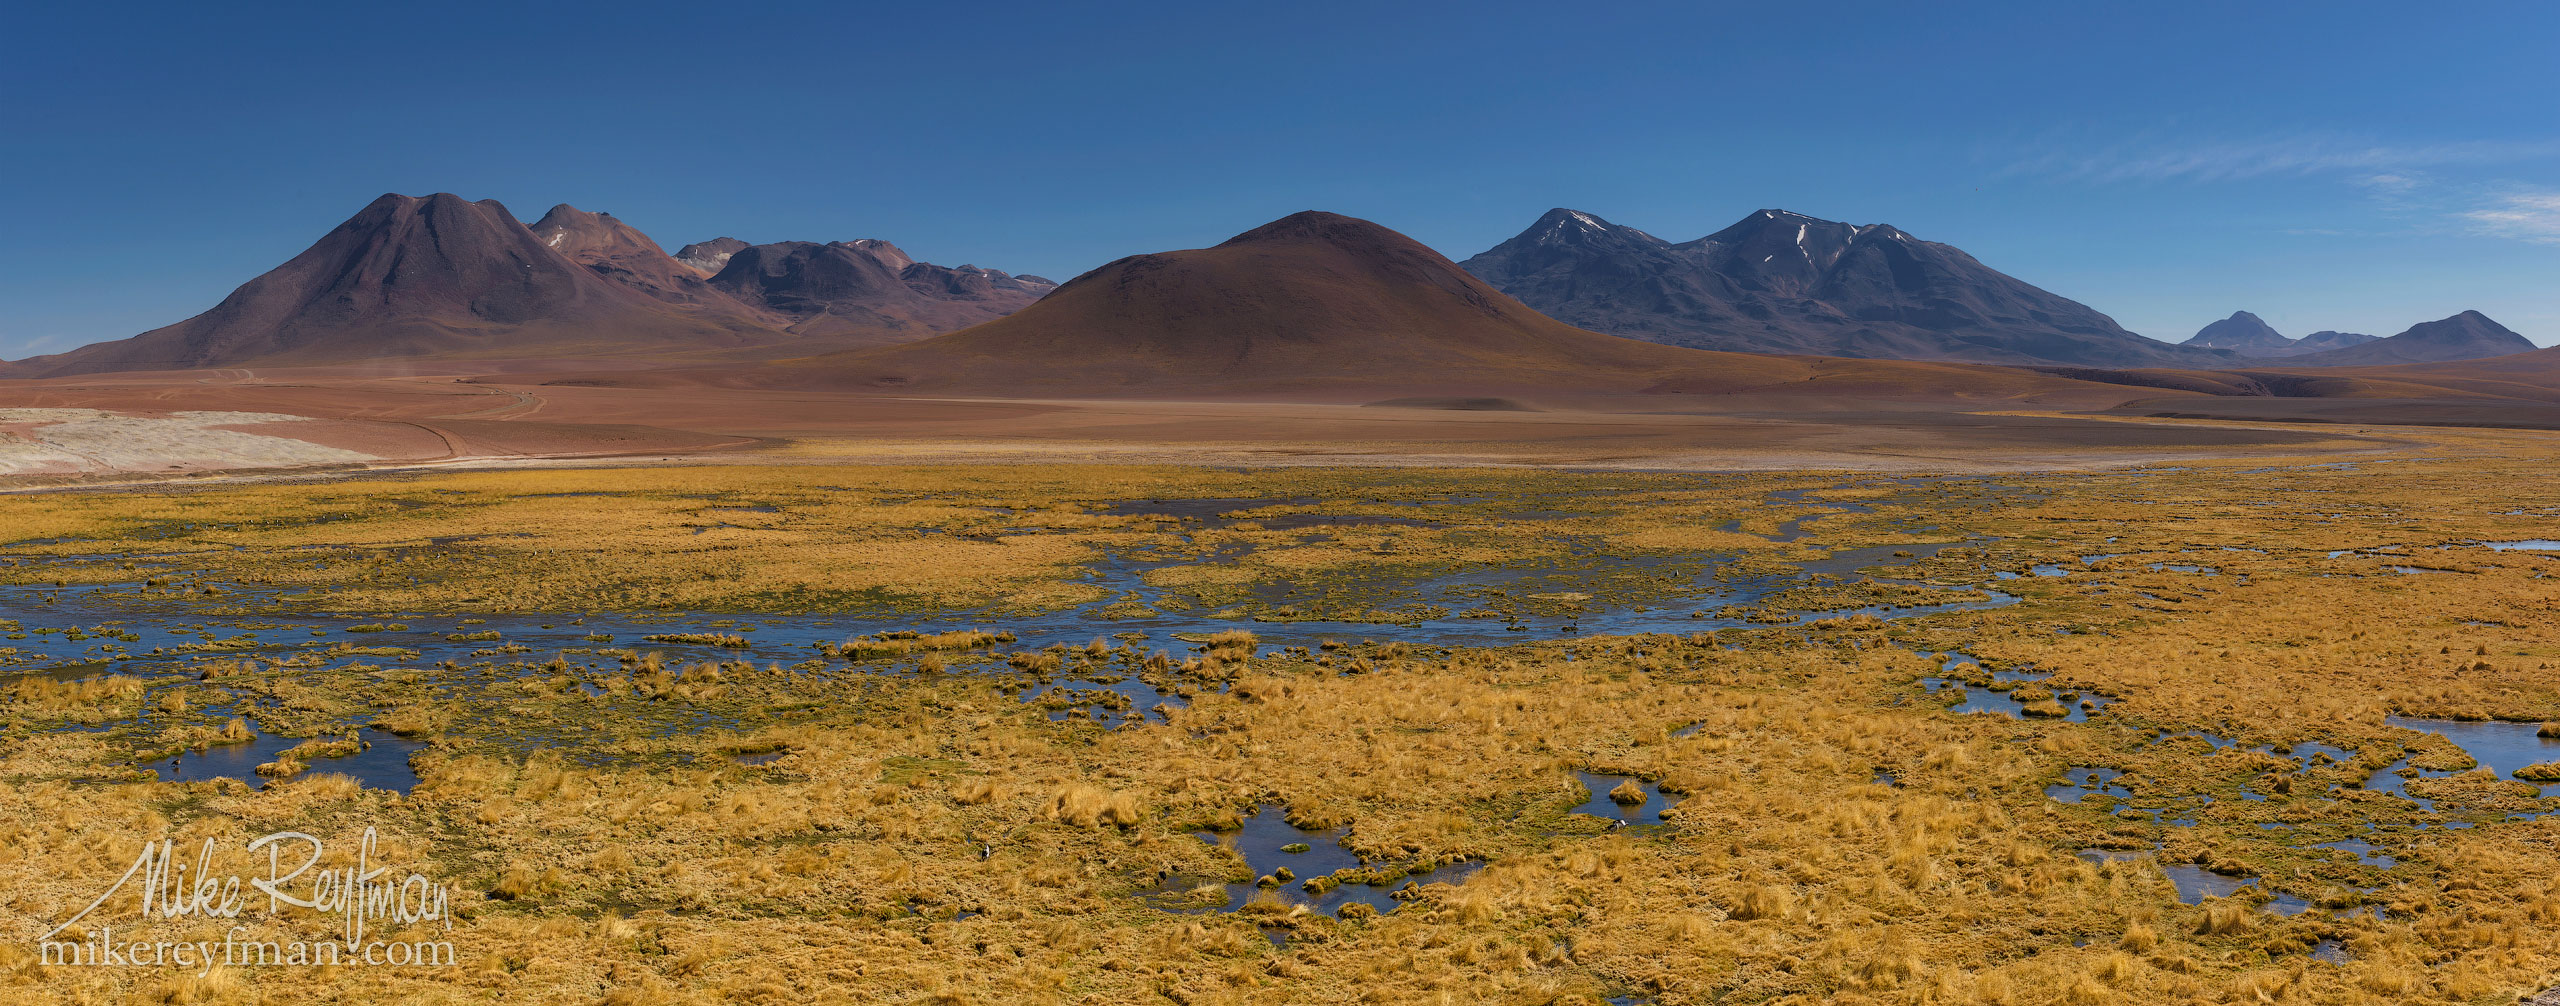 Riverside vegetation. Rio Putana, San Pedro de Atacama, Atacama Desert, Antofagasta Region, Chile AA1-D1D8969_Pano_1x2.55 - Atacama and Altiplano. The Driest Desert and The High Plain - Mike Reyfman Photography